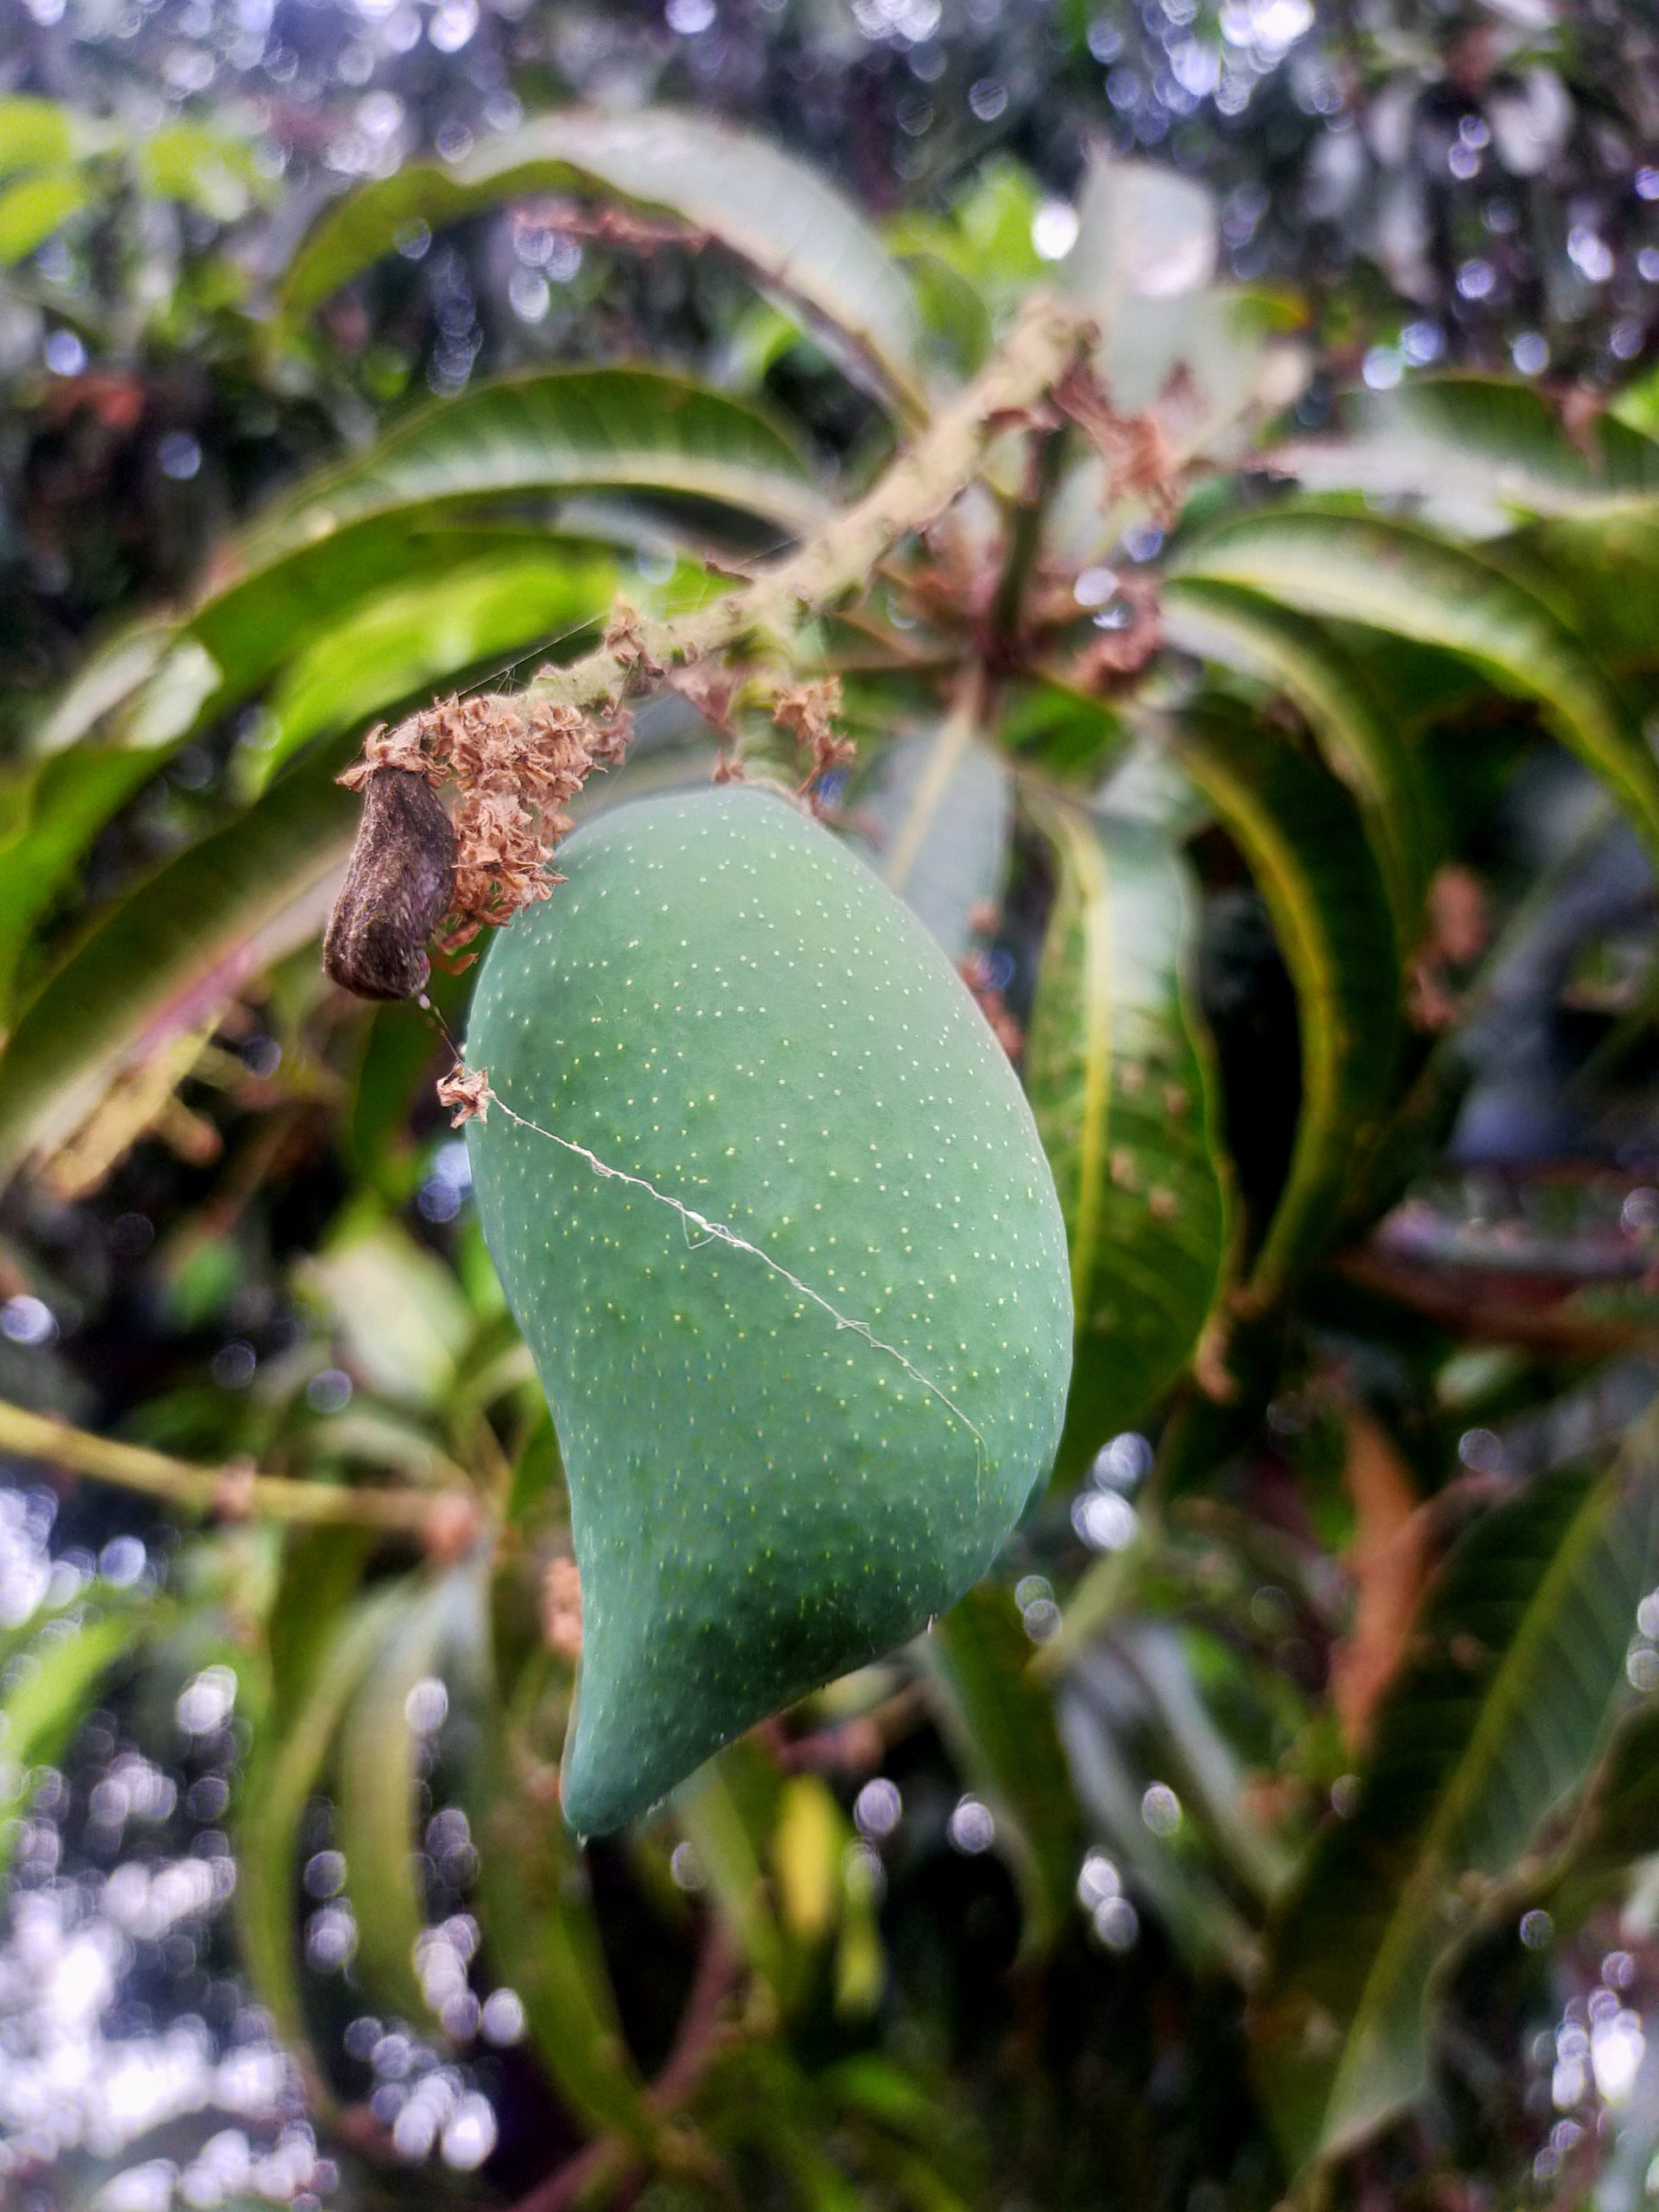 A green mango on its tree